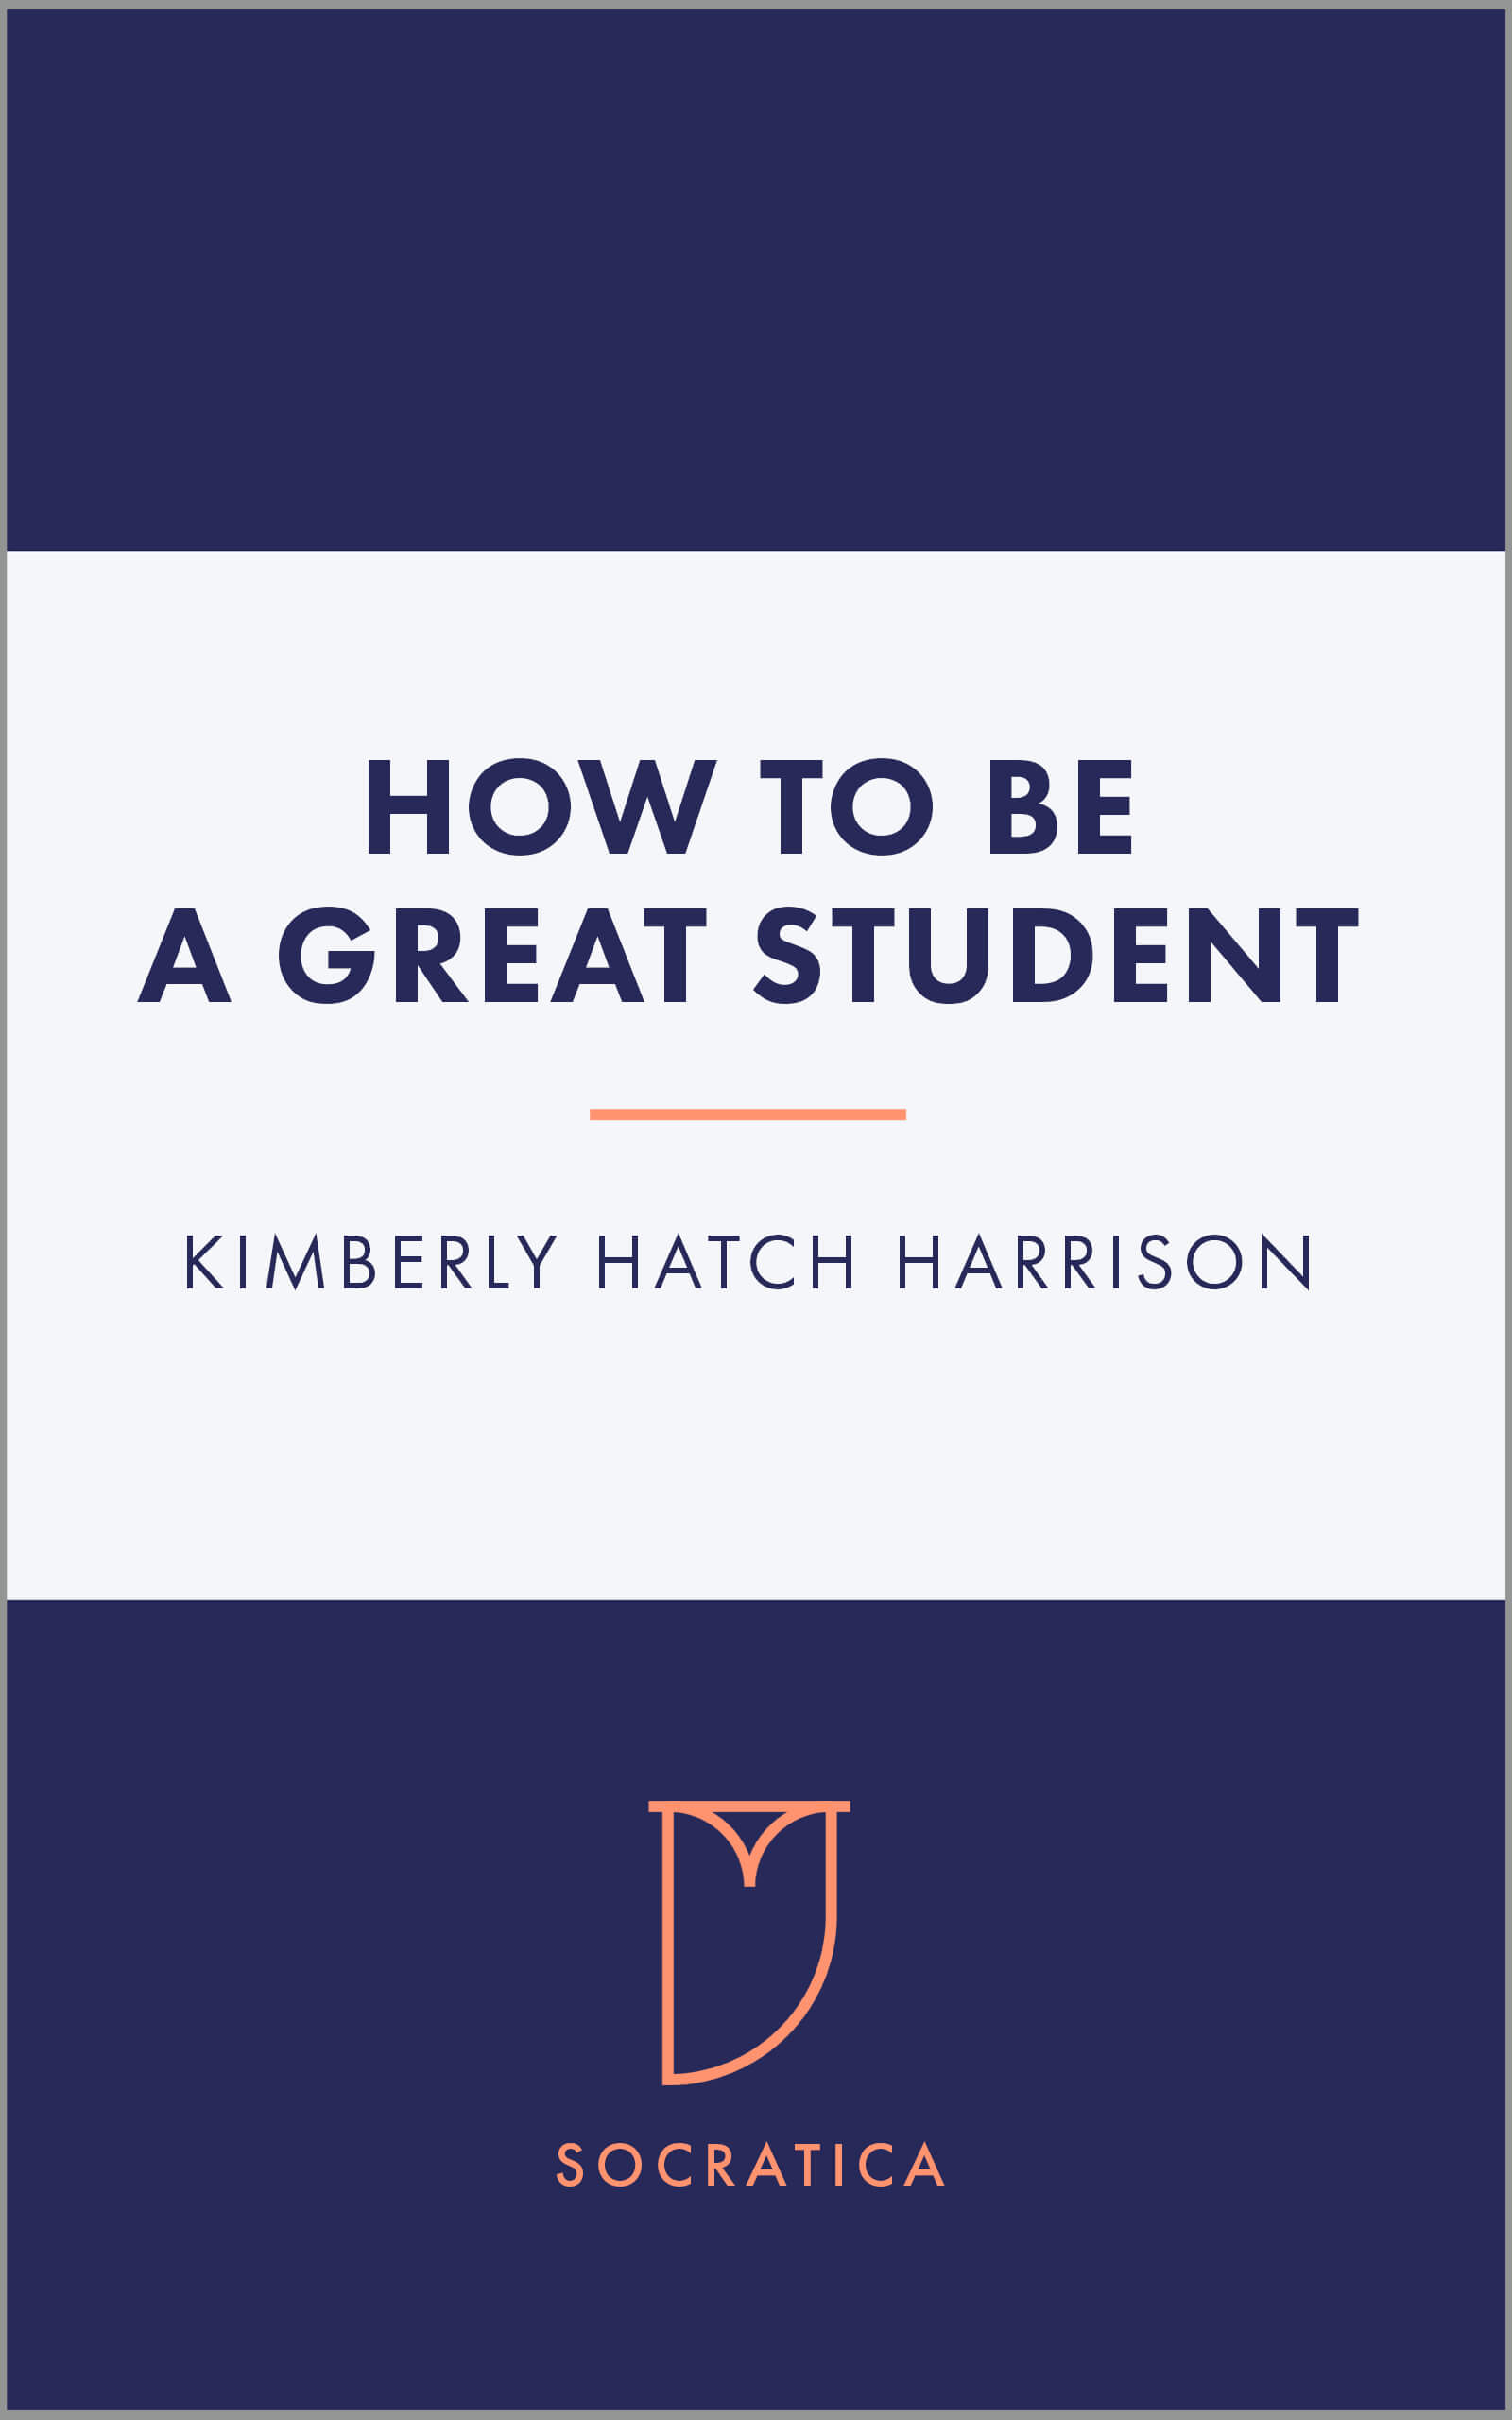 Cover of the book How To Be A Great Student by Kimberly Hatch Harrison